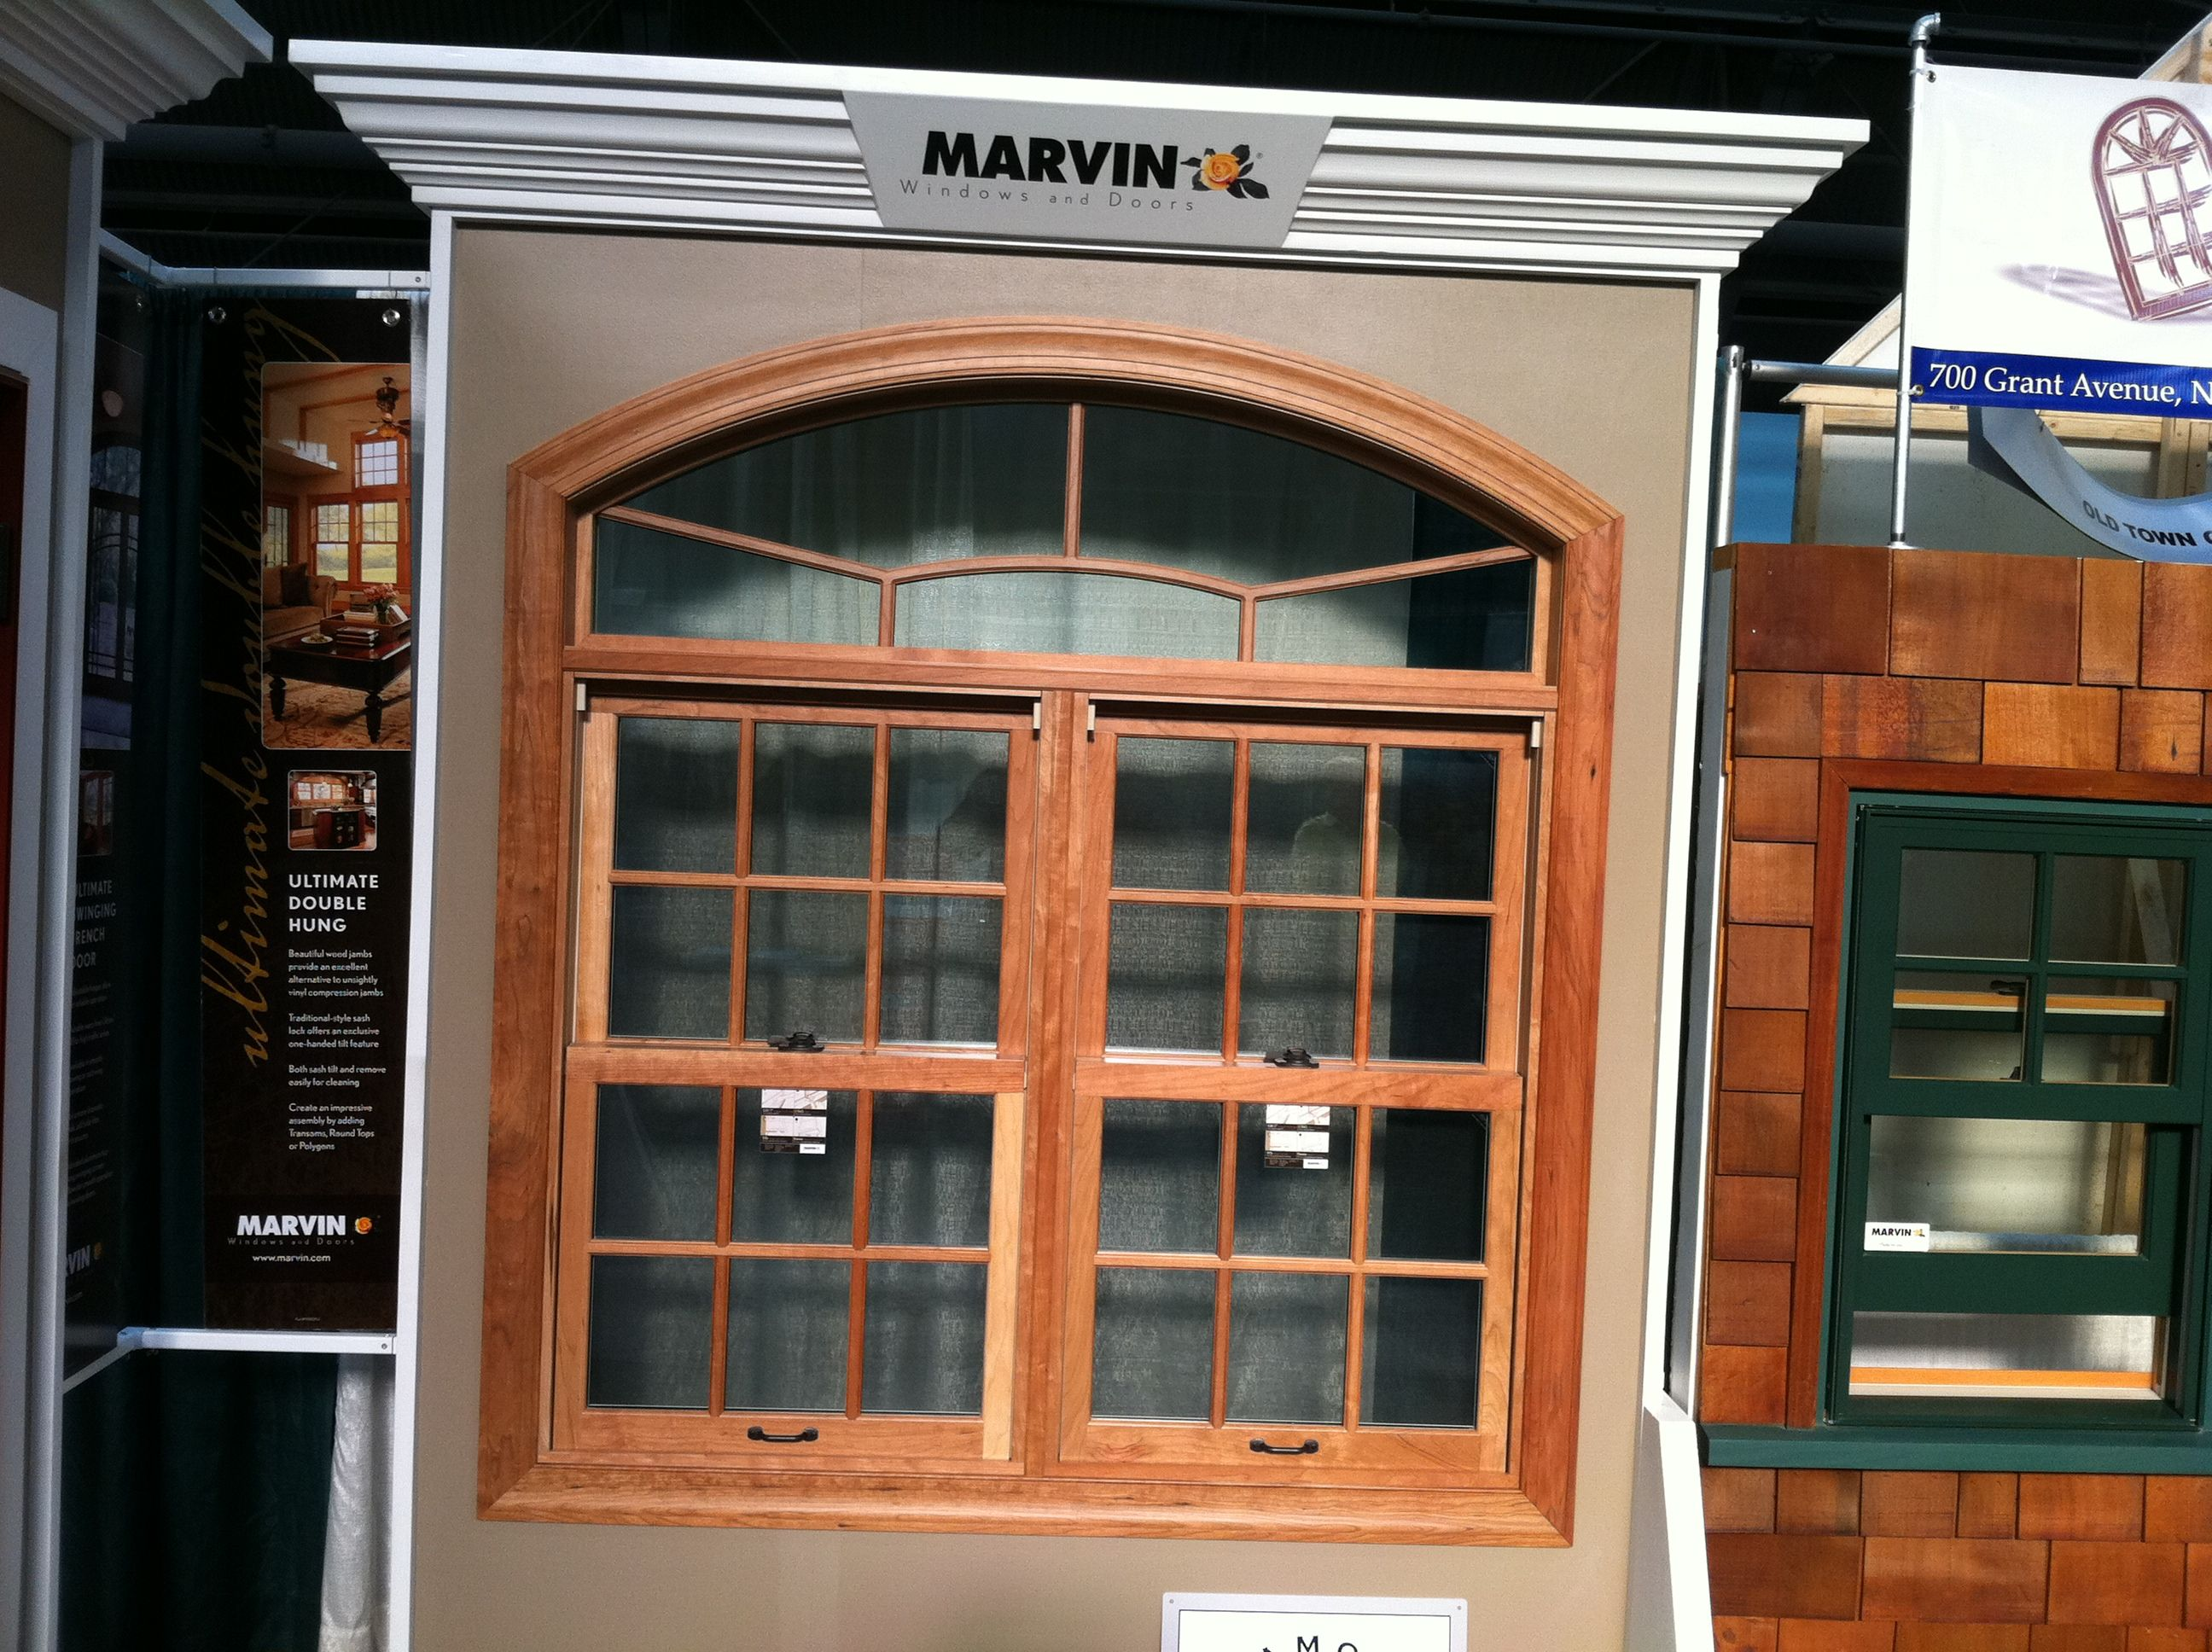 Pair Of Marvin Clad Double Hung Windows With Arched Top Transom Cherry Interior Custom 7 8 Sdl From The Old T Double Hung Double Hung Windows Window Design